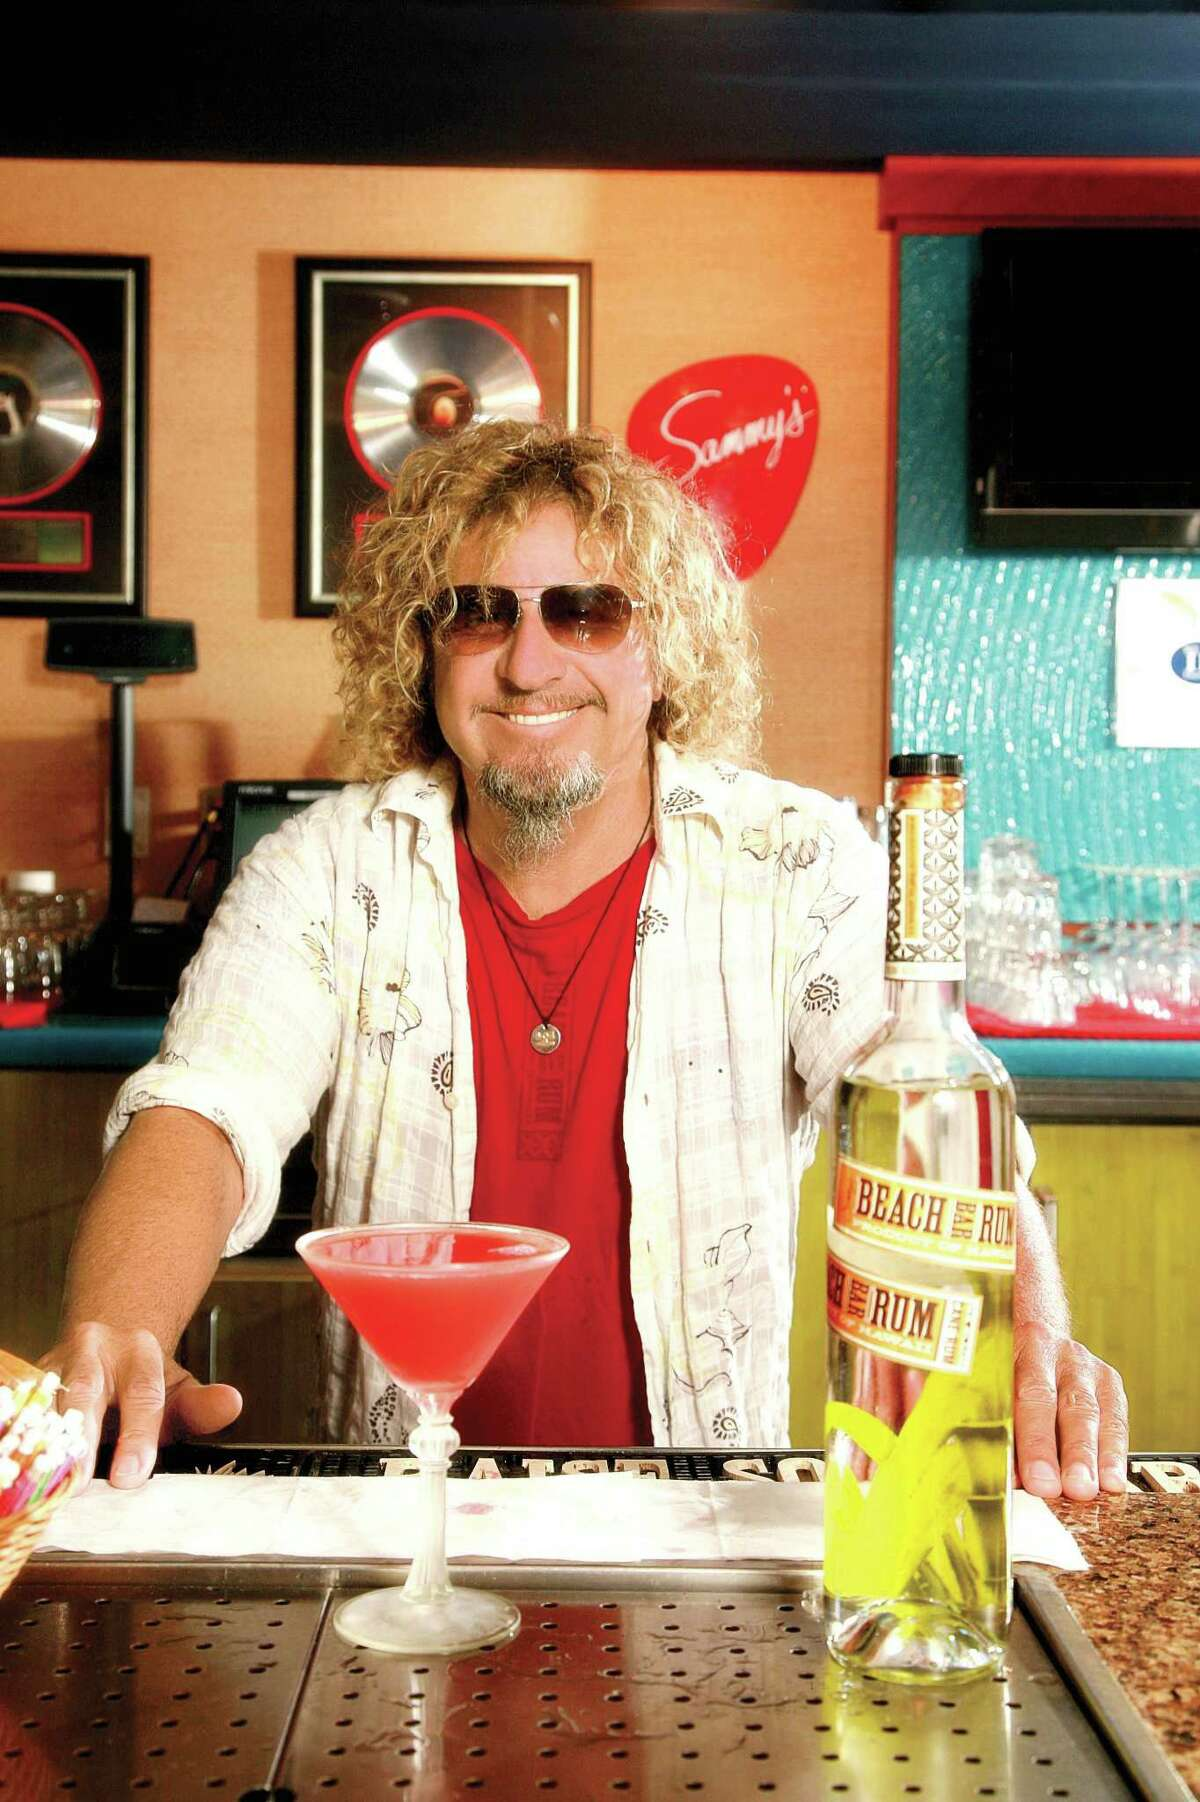 Following on the heels of his popular Cabo Wabo Cantina franchise, Sammy Hagar created the Sammy's Beach Bar & Grill restaurant concept, which has locations at the airports in Kahului, Maui, Las Vegas; New York (JFK) and Cleveland. Proceeds from the Maui site benefit local nonprofits close to Hagar's heart, including A Keiki's Dream, Na Hoaloha, and Hana Youth Center, among others.